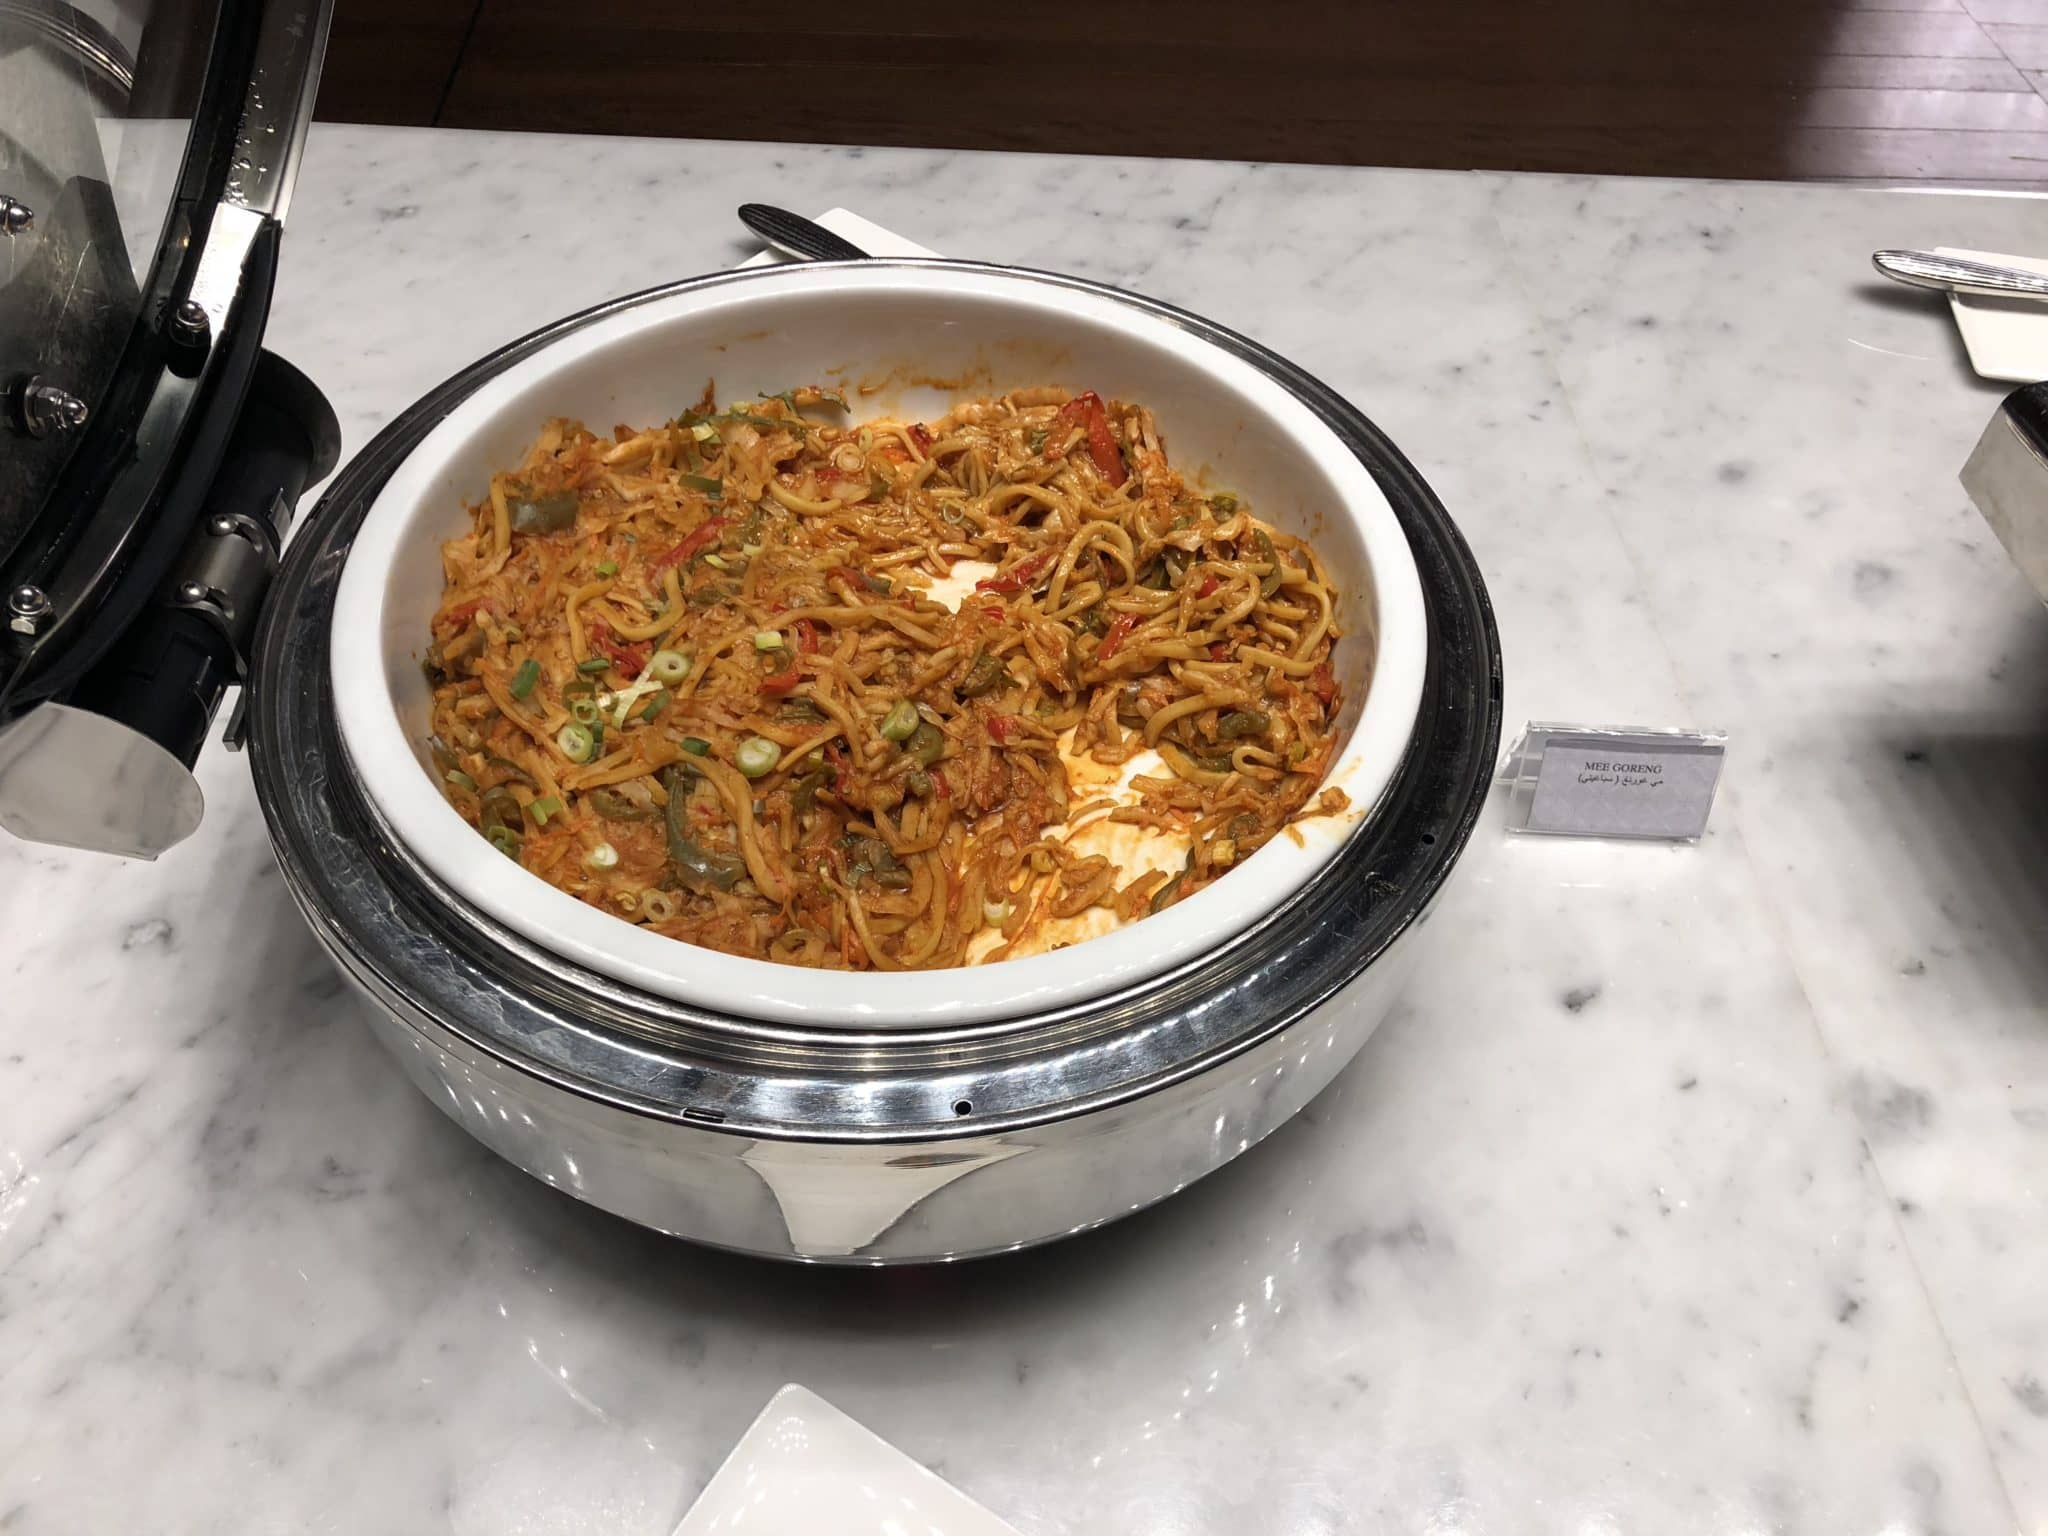 Qatar Airways Al Mourjan Business Class Lounge Mee Goreng Restaurant